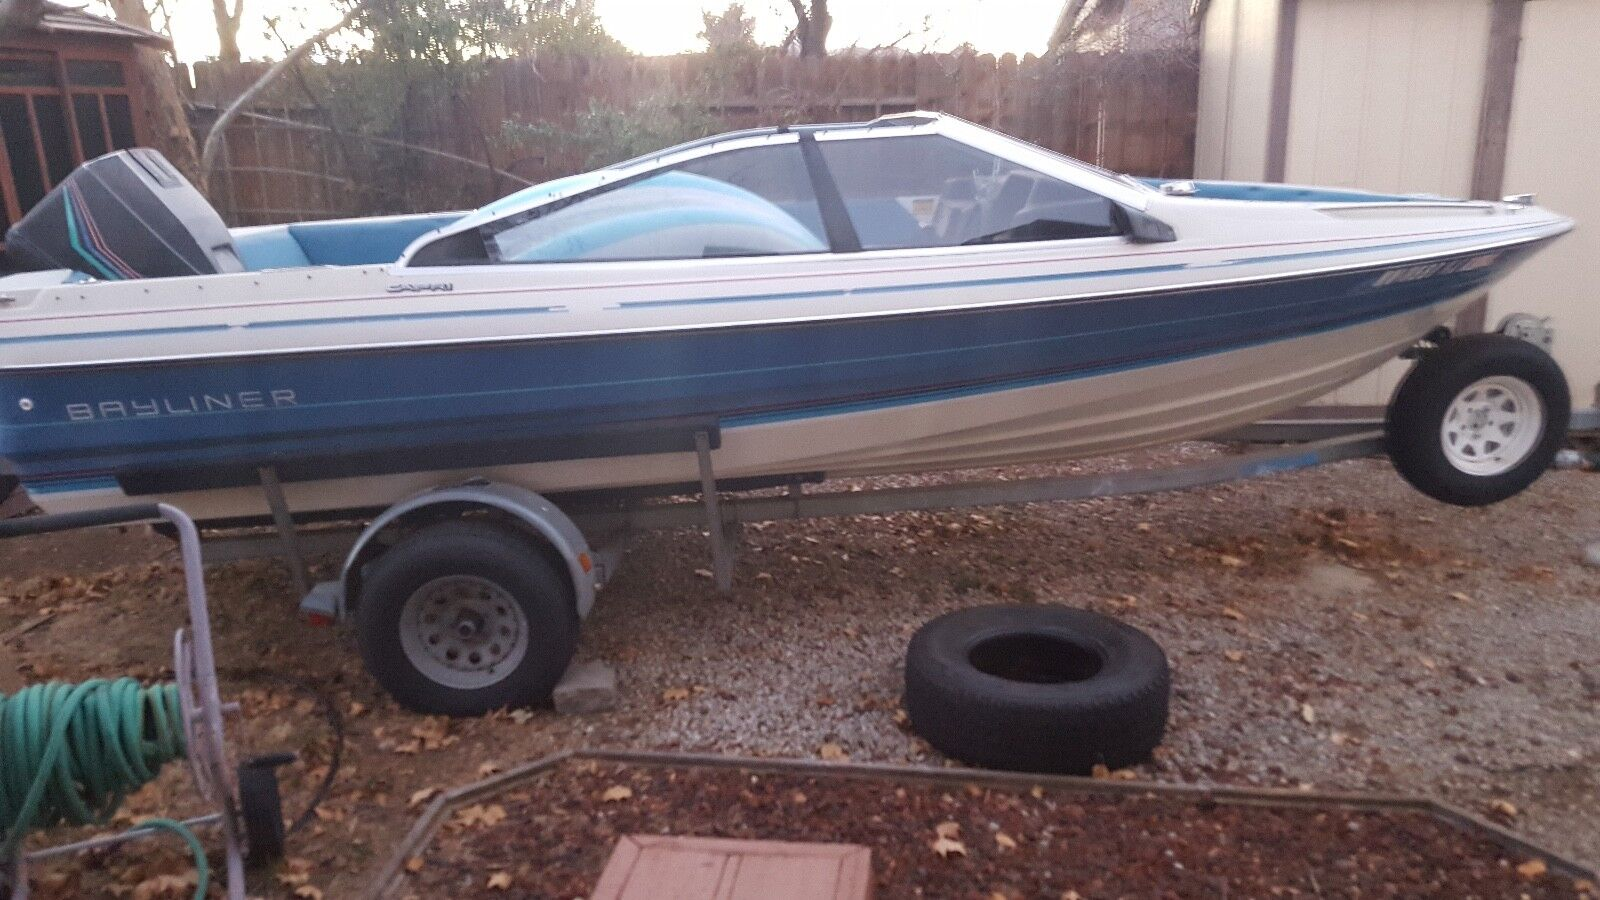 1988 Bayliner Powerboat w Motor & Trailer, Sun Valley NV | No Fees & No Reserve